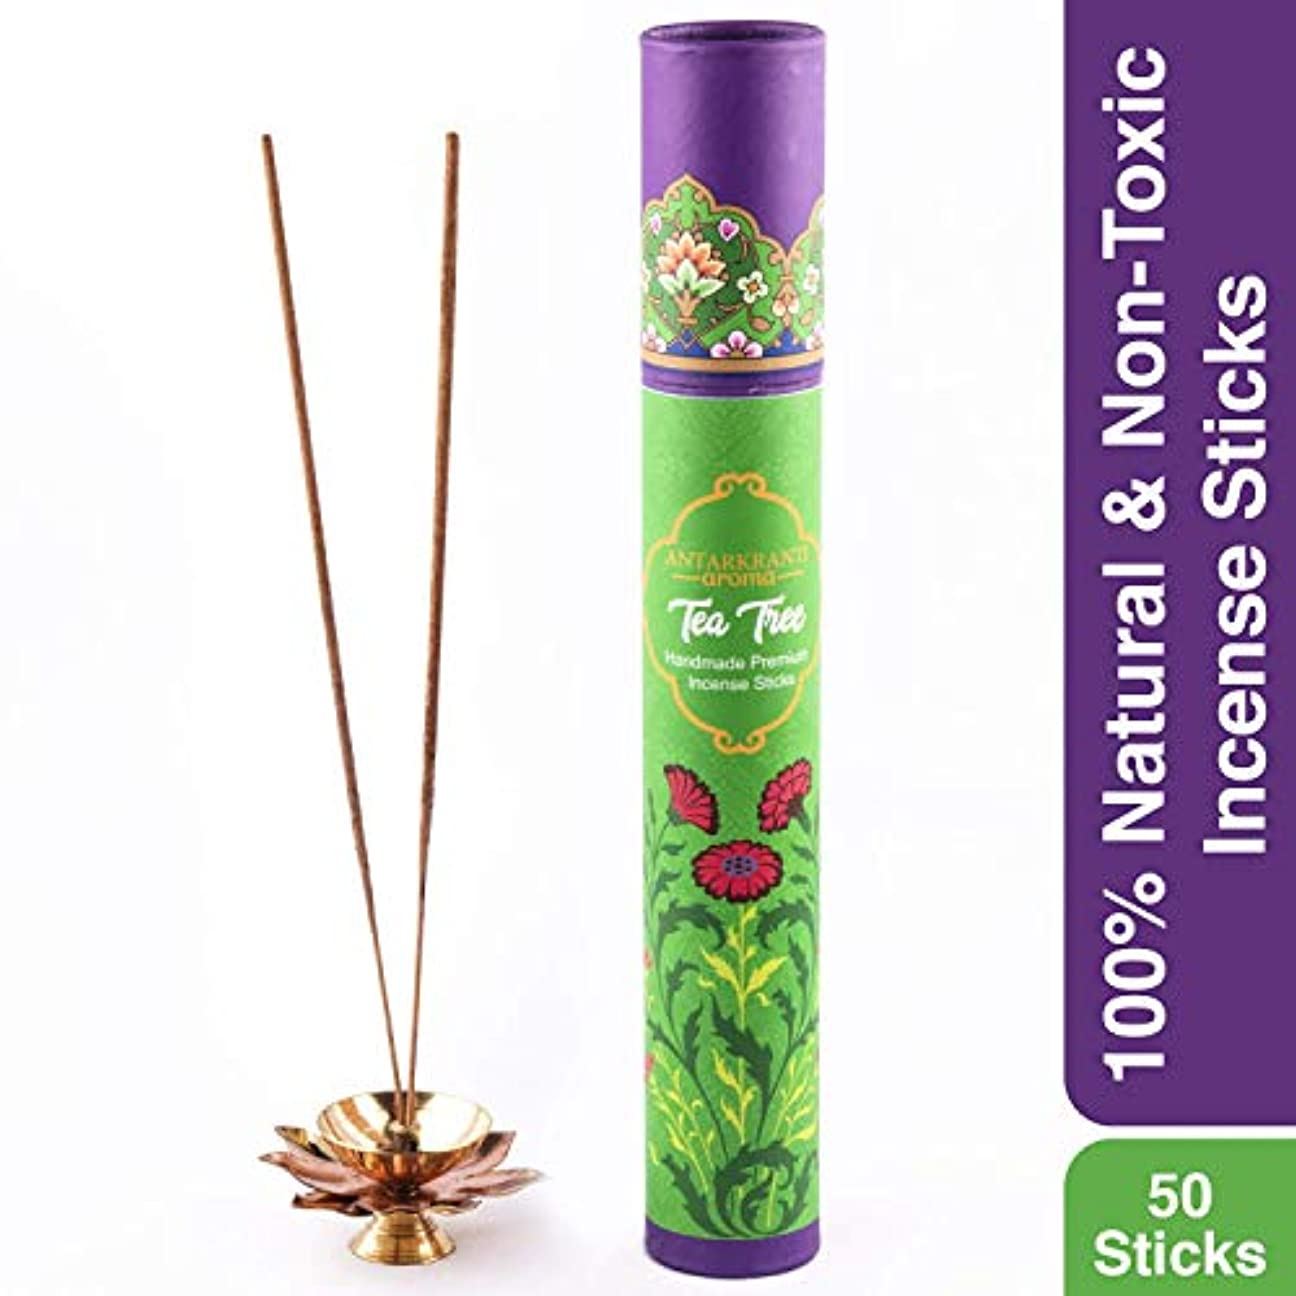 オズワルドバイオレットディーラーAntarkranti Tradition Tea Tree Incense Stick Agarbatti